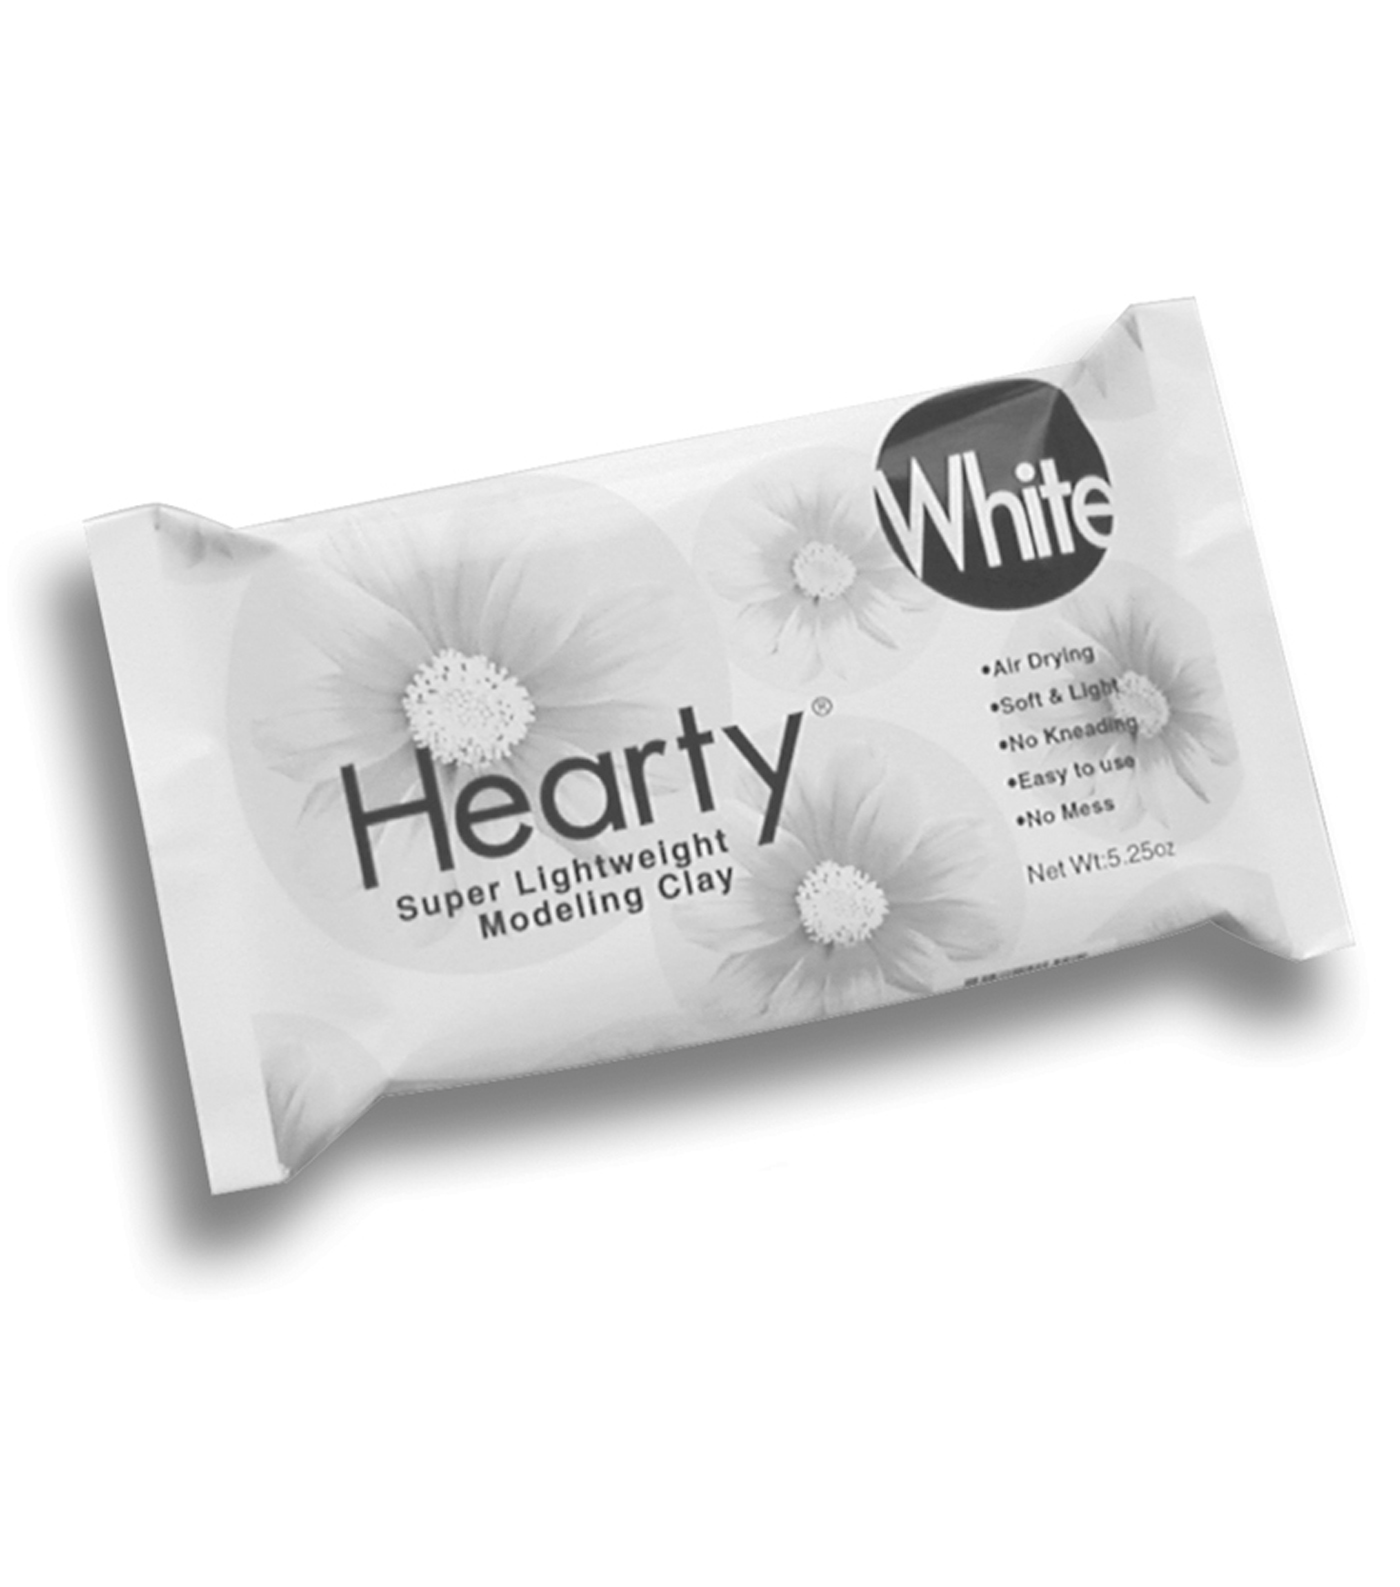 Hearty Super Lightweight Air-Dry Clay 5.25oz-White